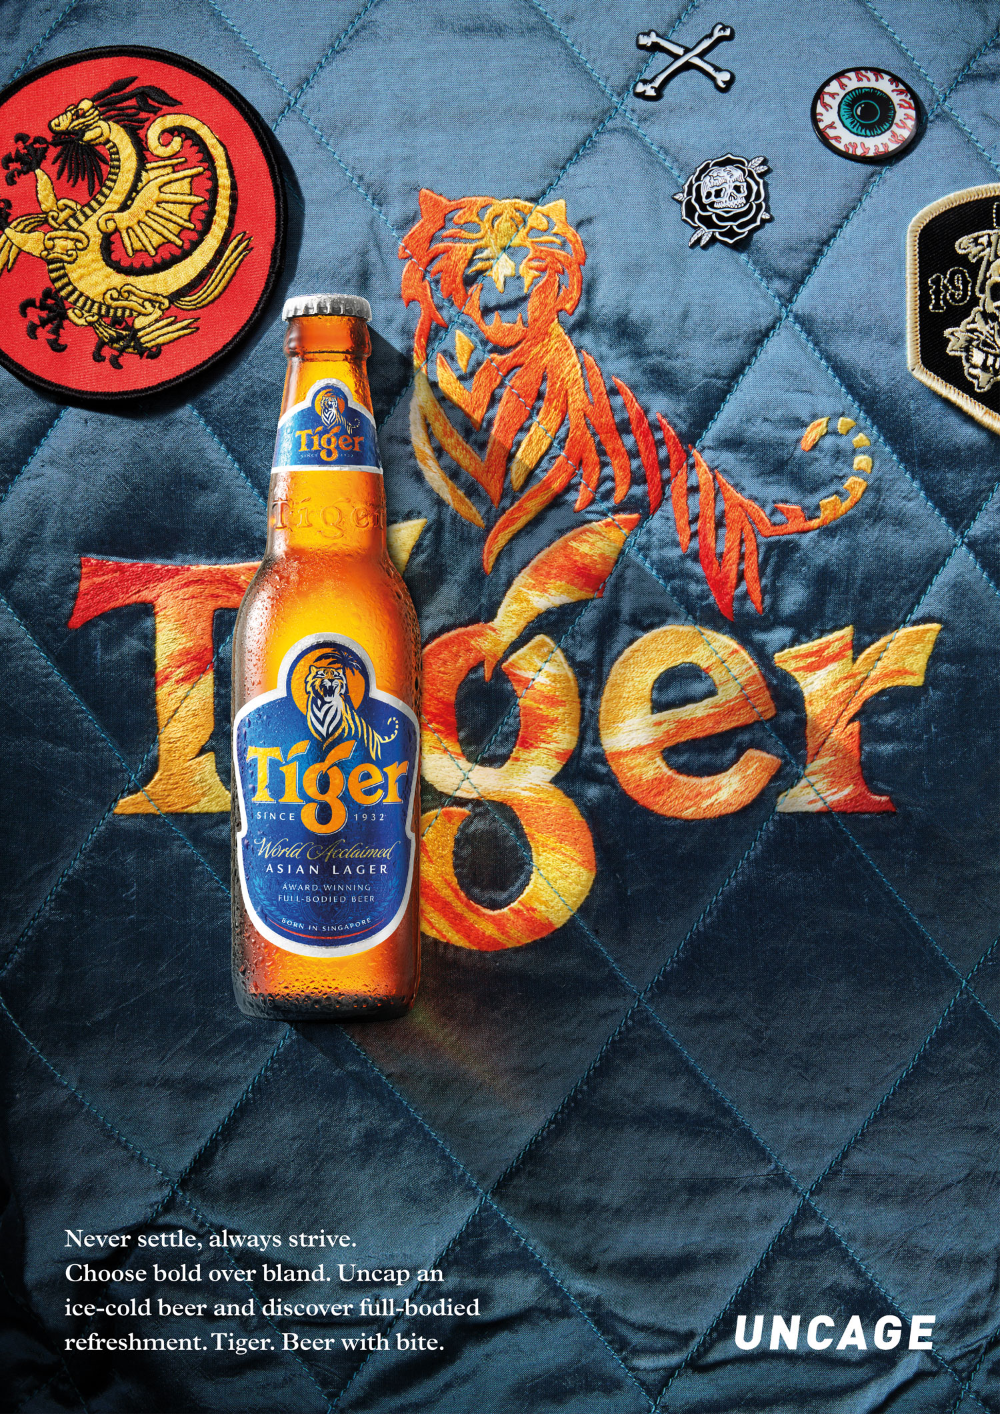 Pin By Nguya N Trung Tan On Tiger In 2020 Tiger Beer Creative Illustration Cold Beer